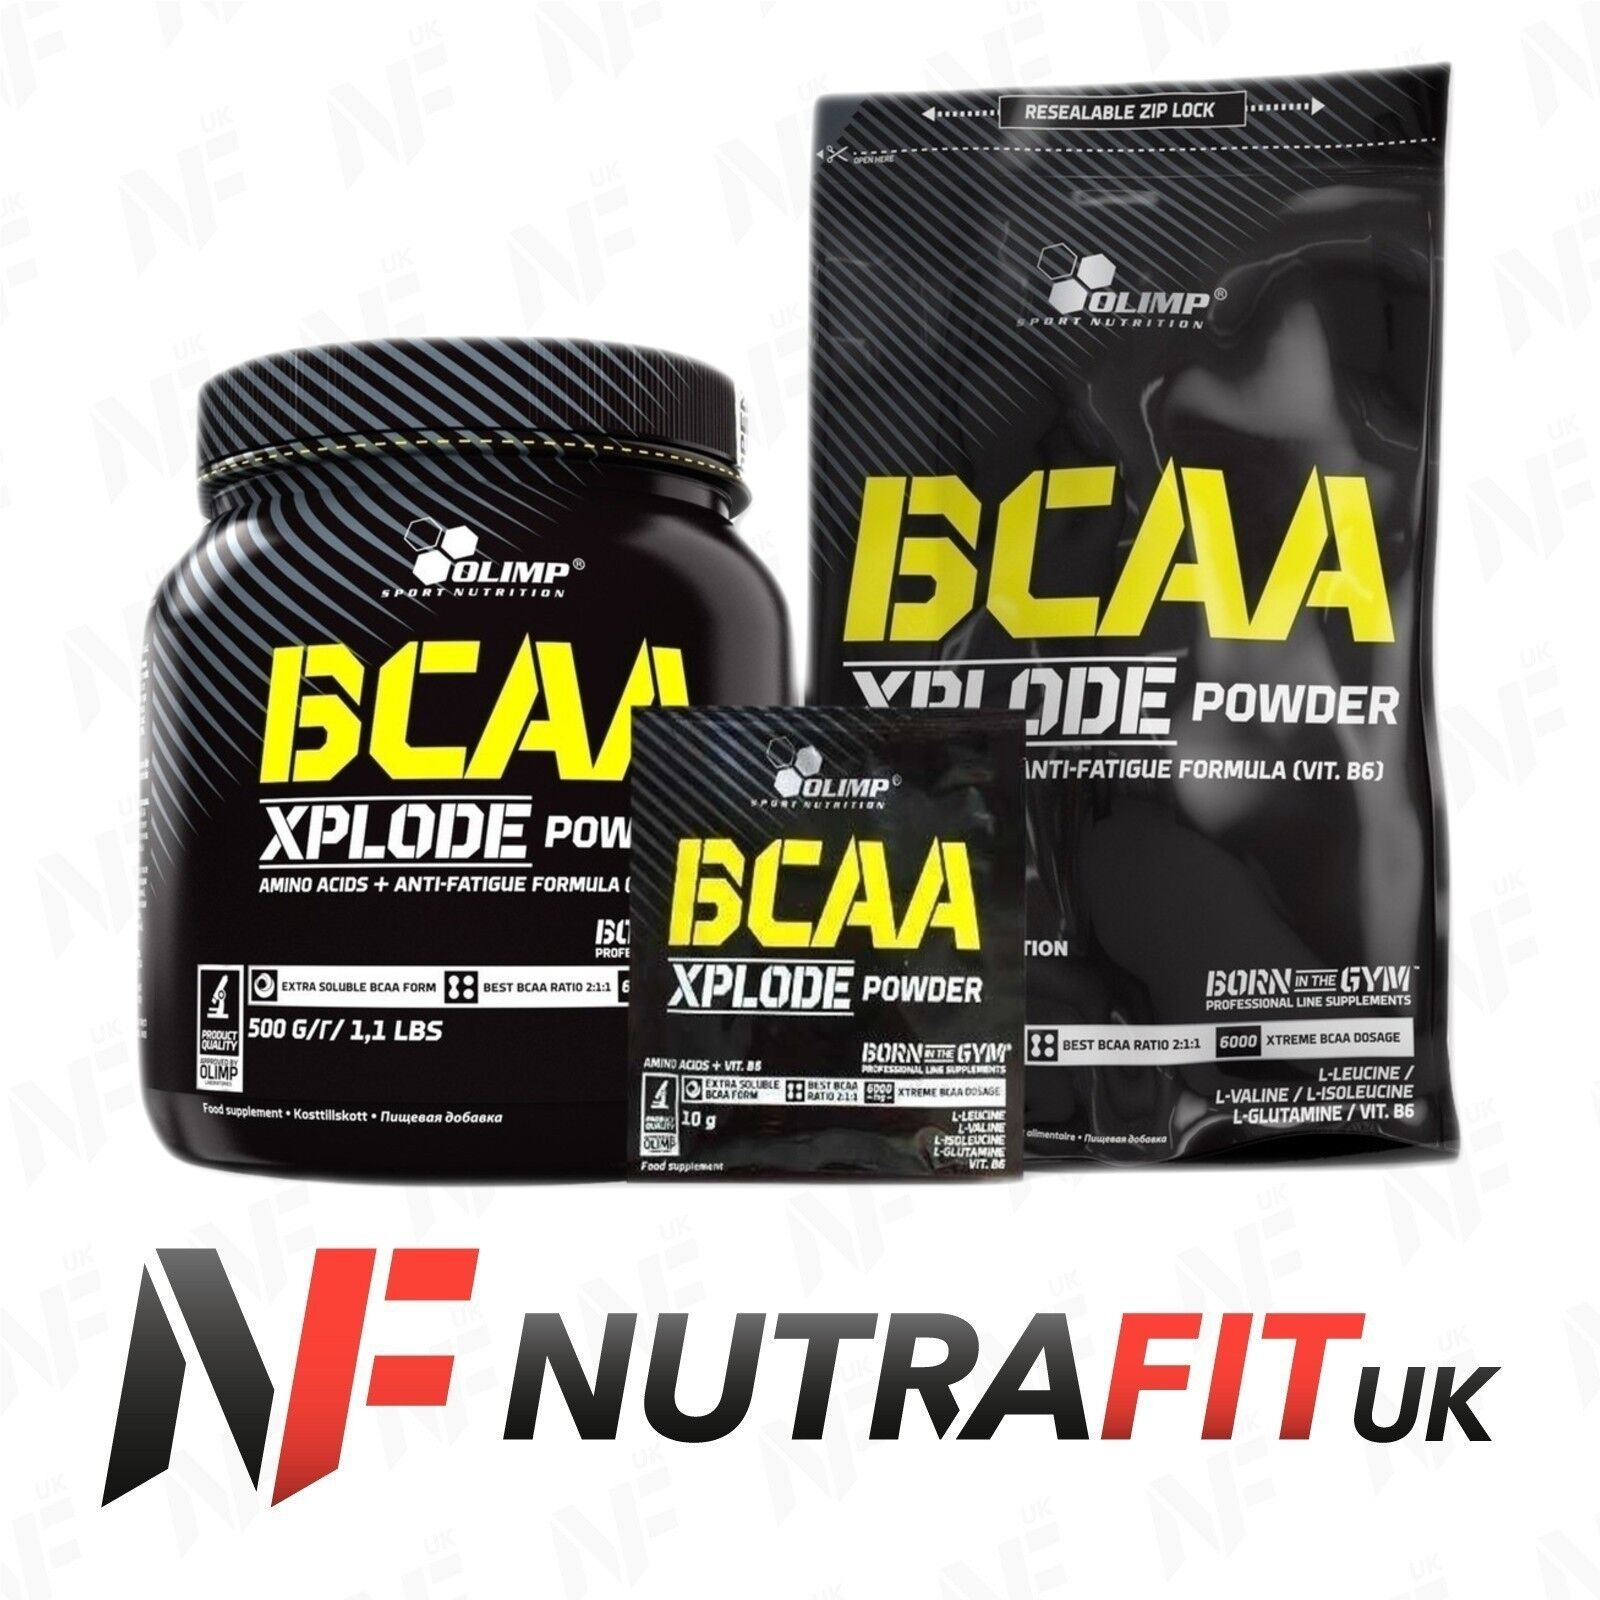 OLIMP BCAA XPLODE POWDER branched chain amino acids glutamine vitamin B6